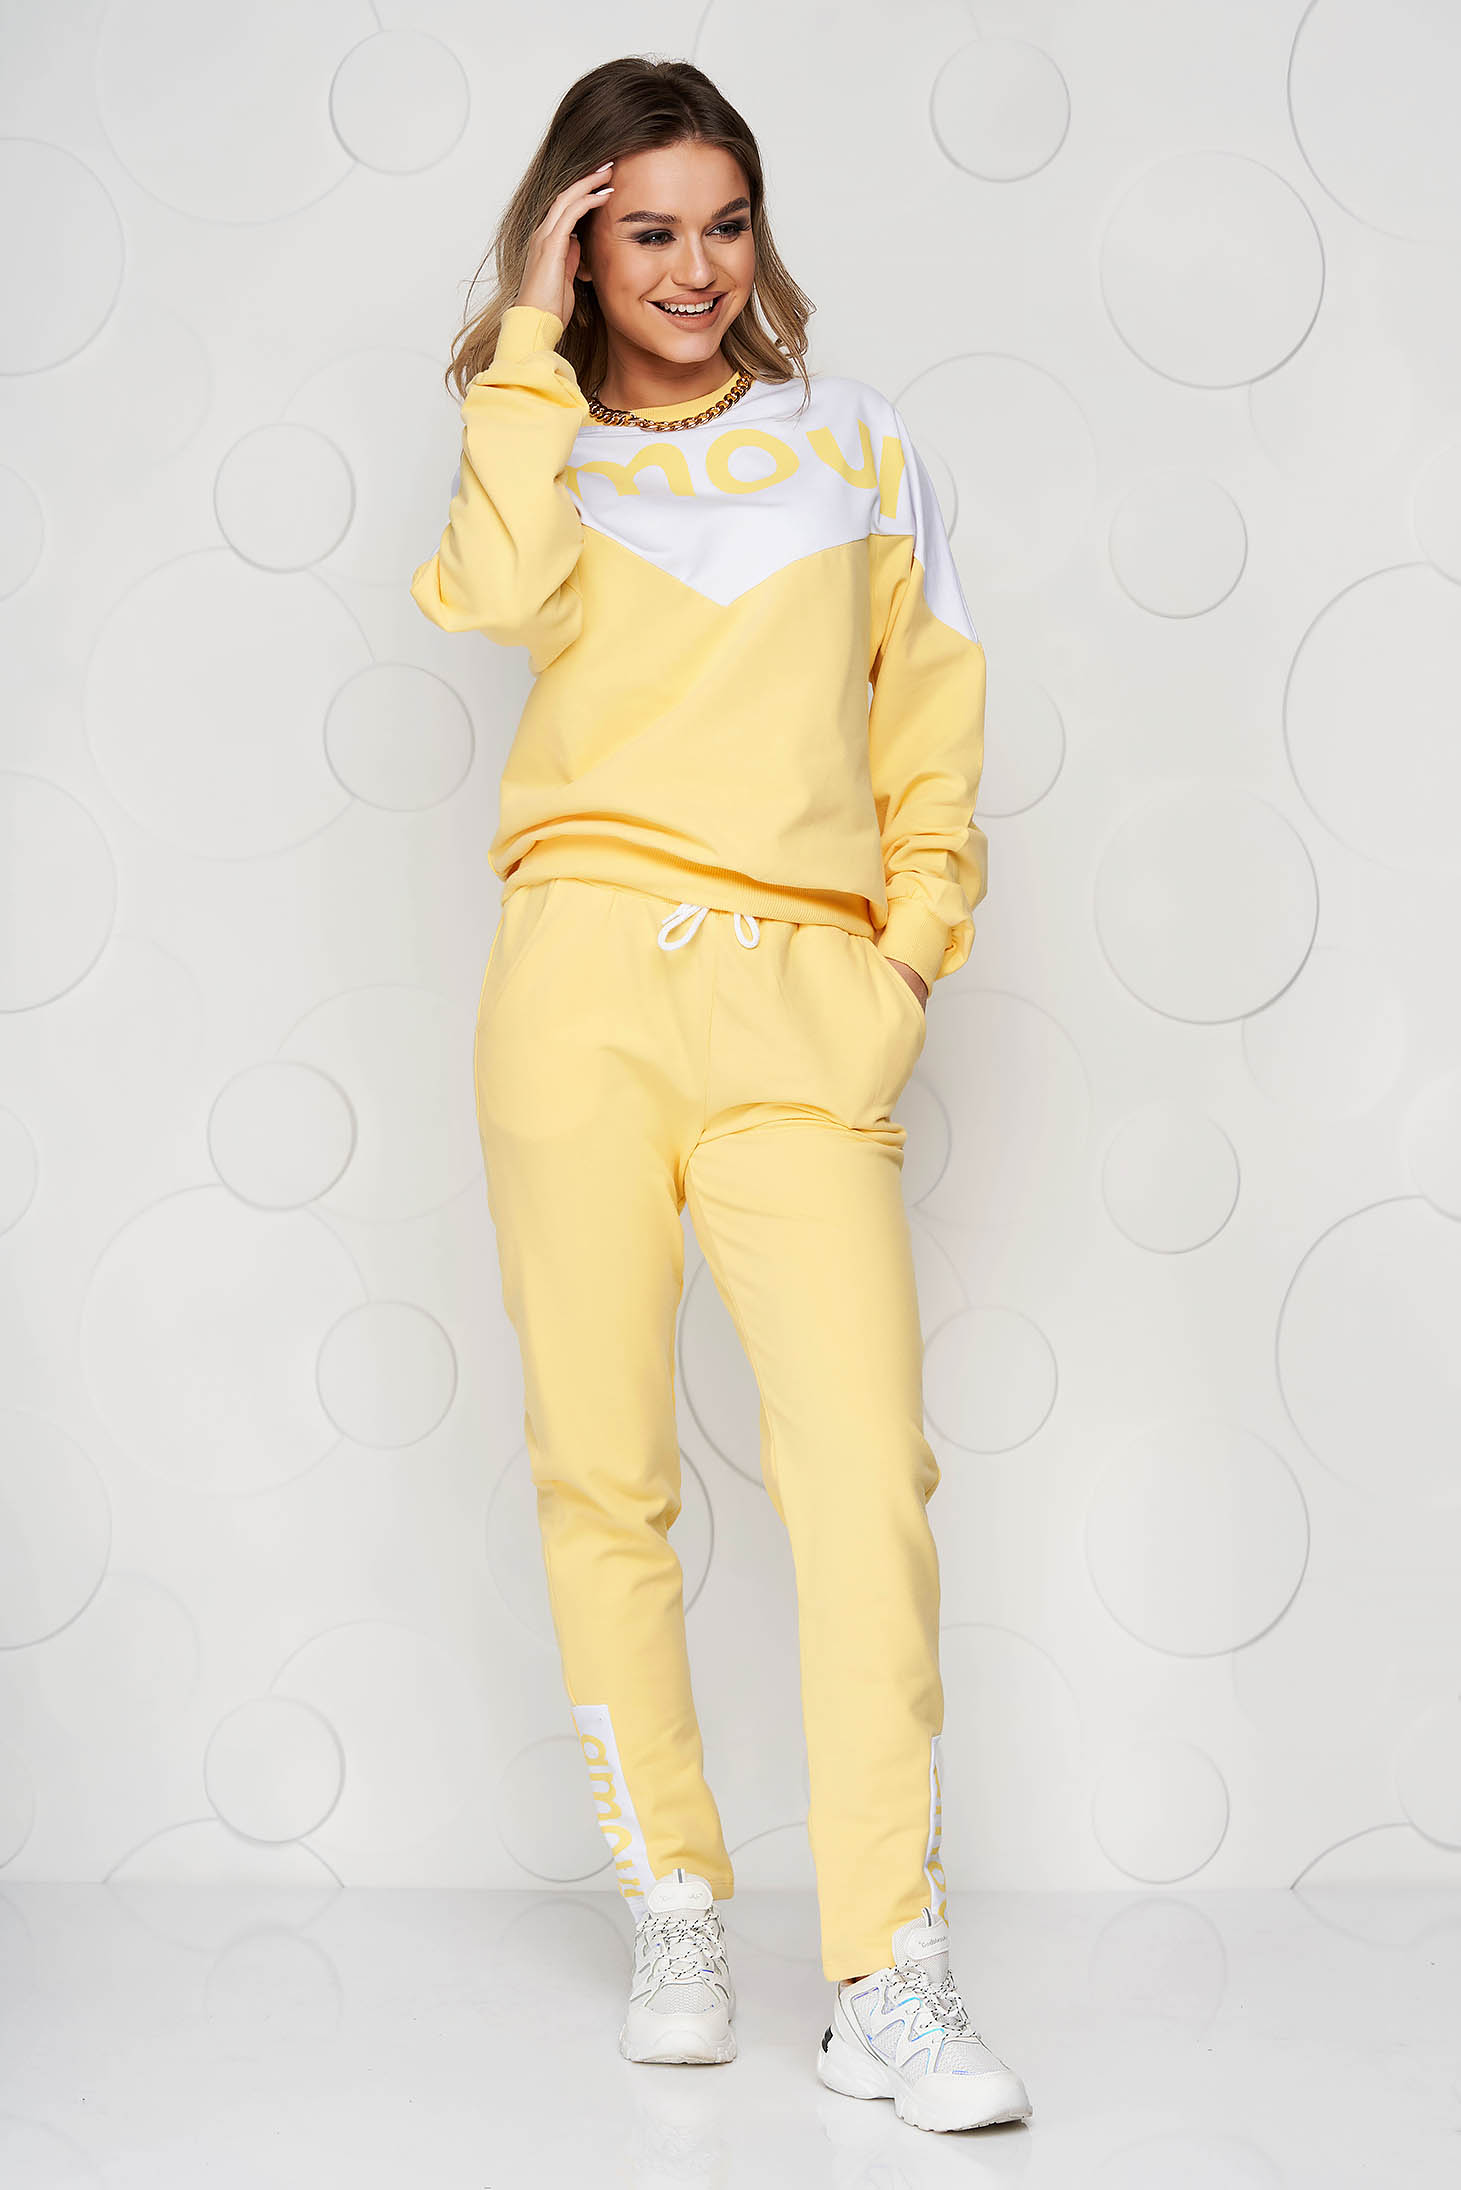 Yellow sport 2 pieces loose fit with graphic details cotton